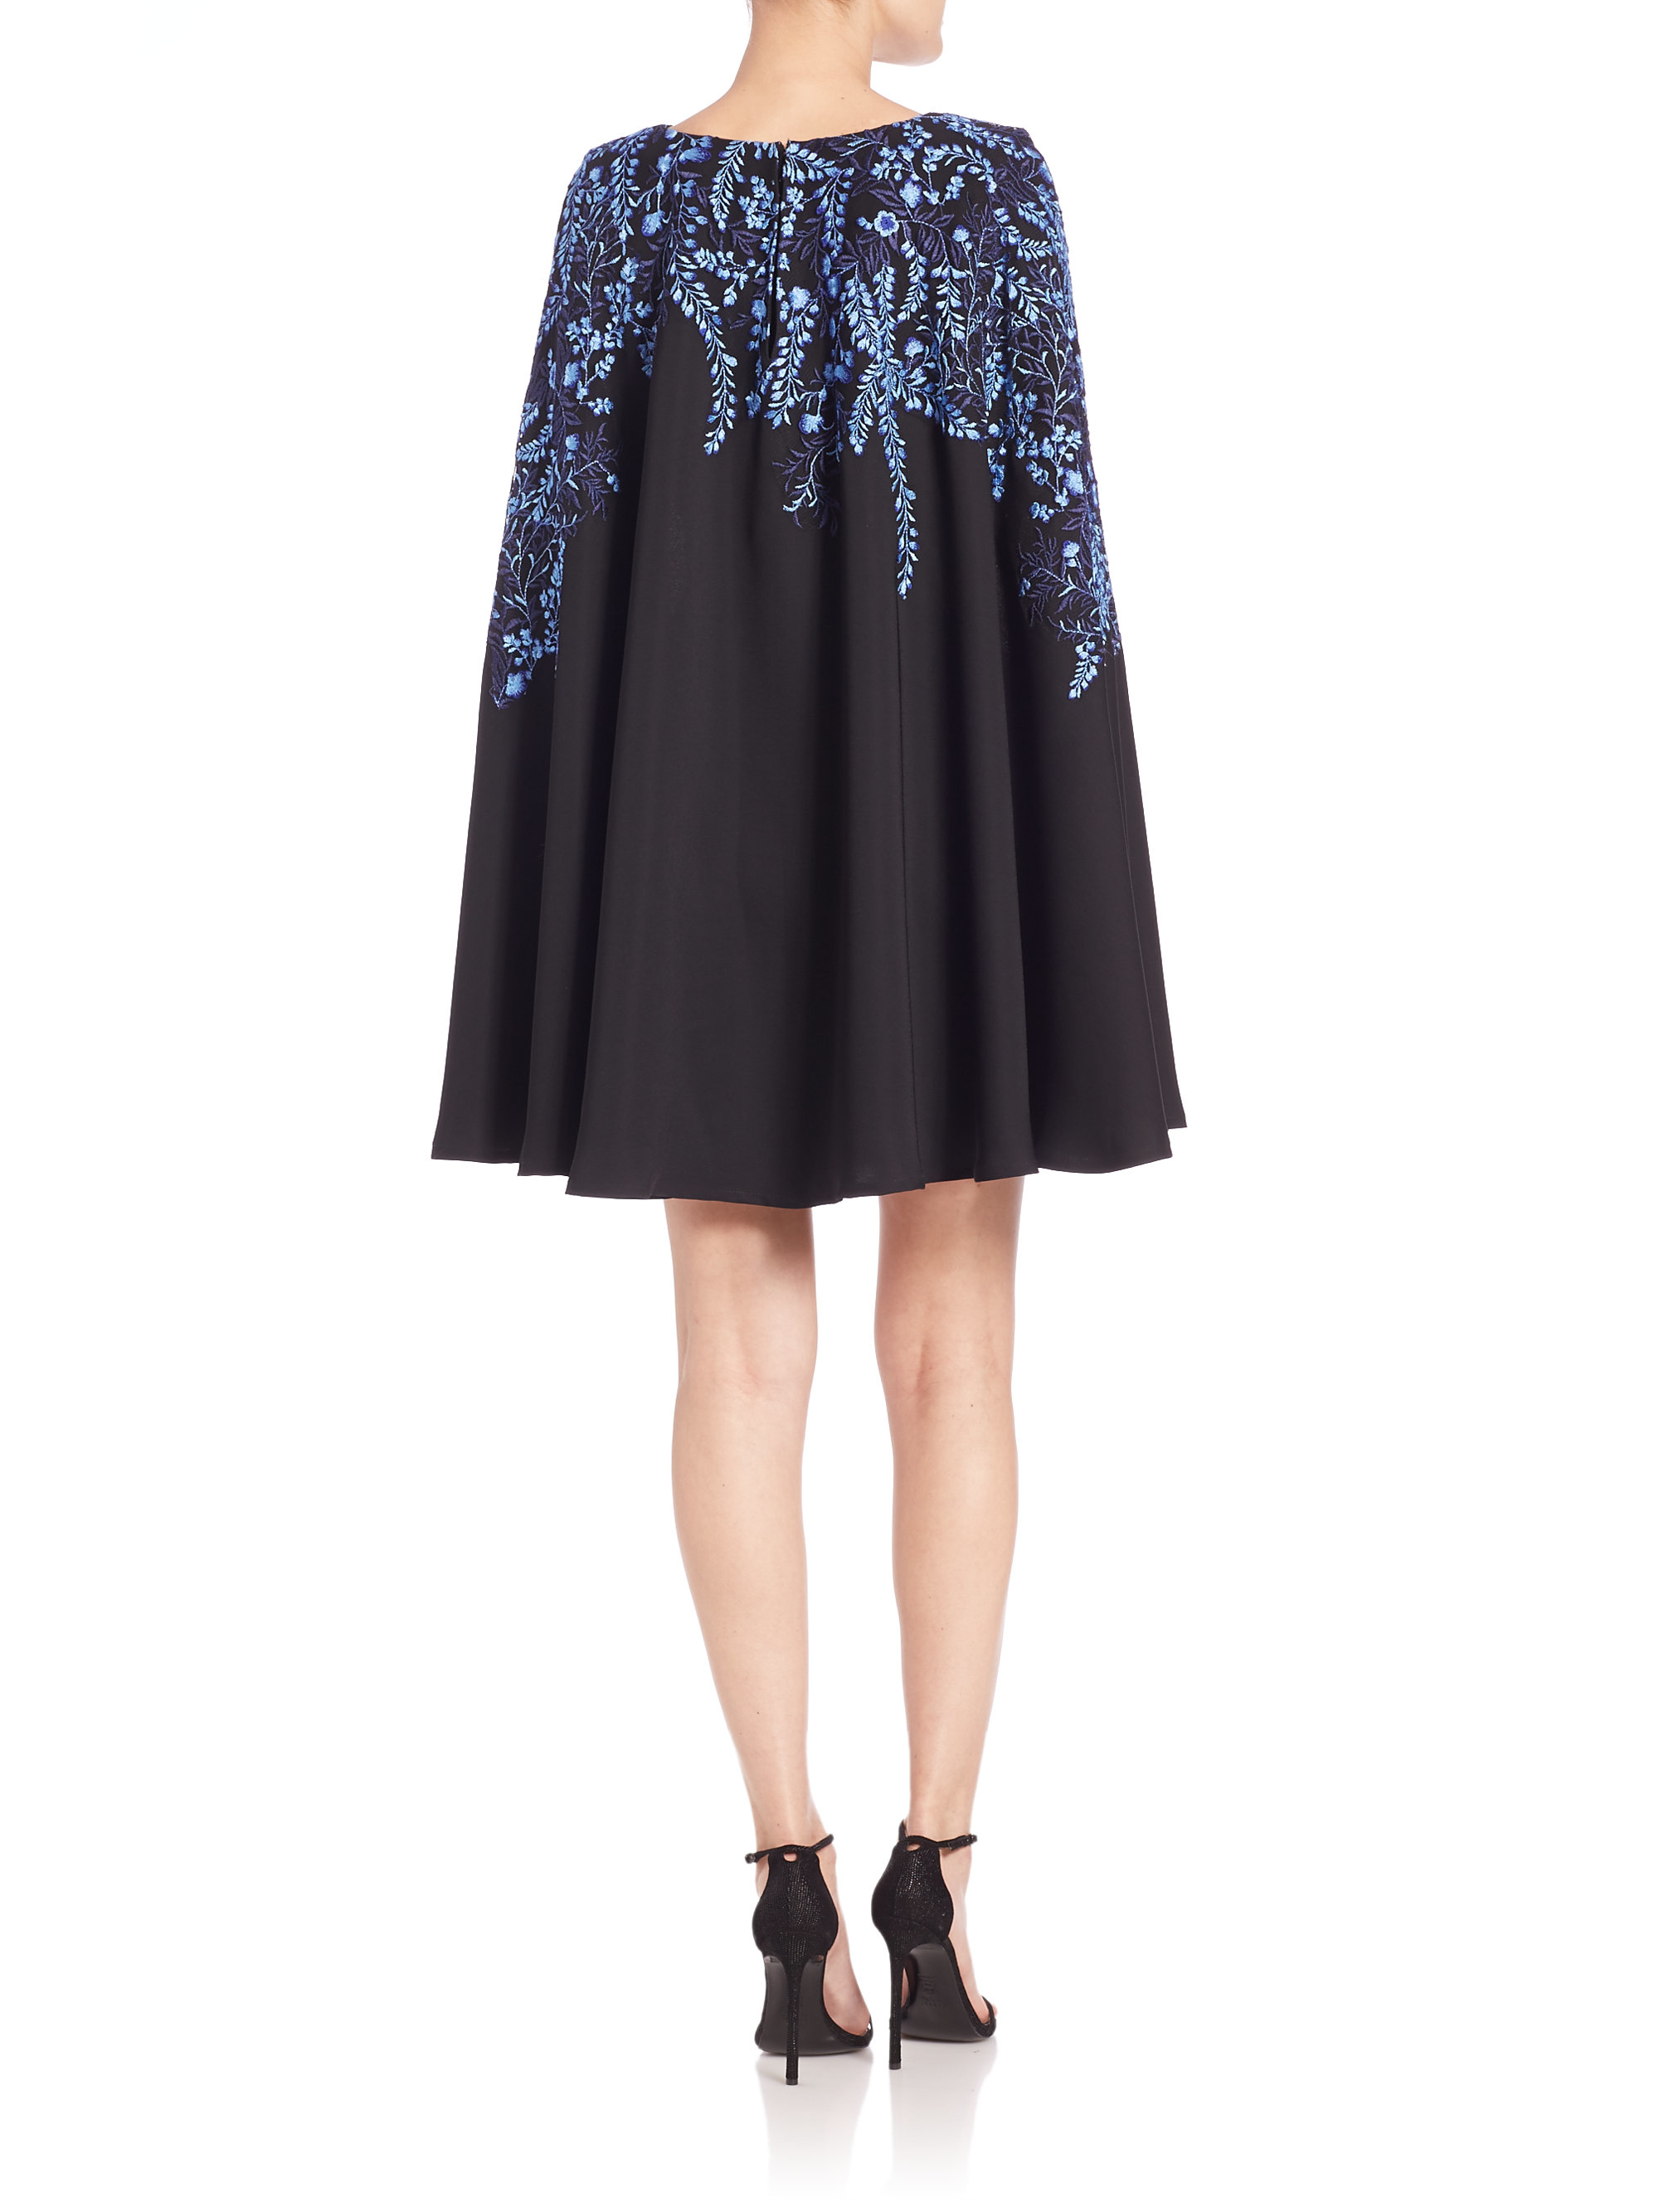 Lyst tadashi shoji floral embroidered cape dress in blue